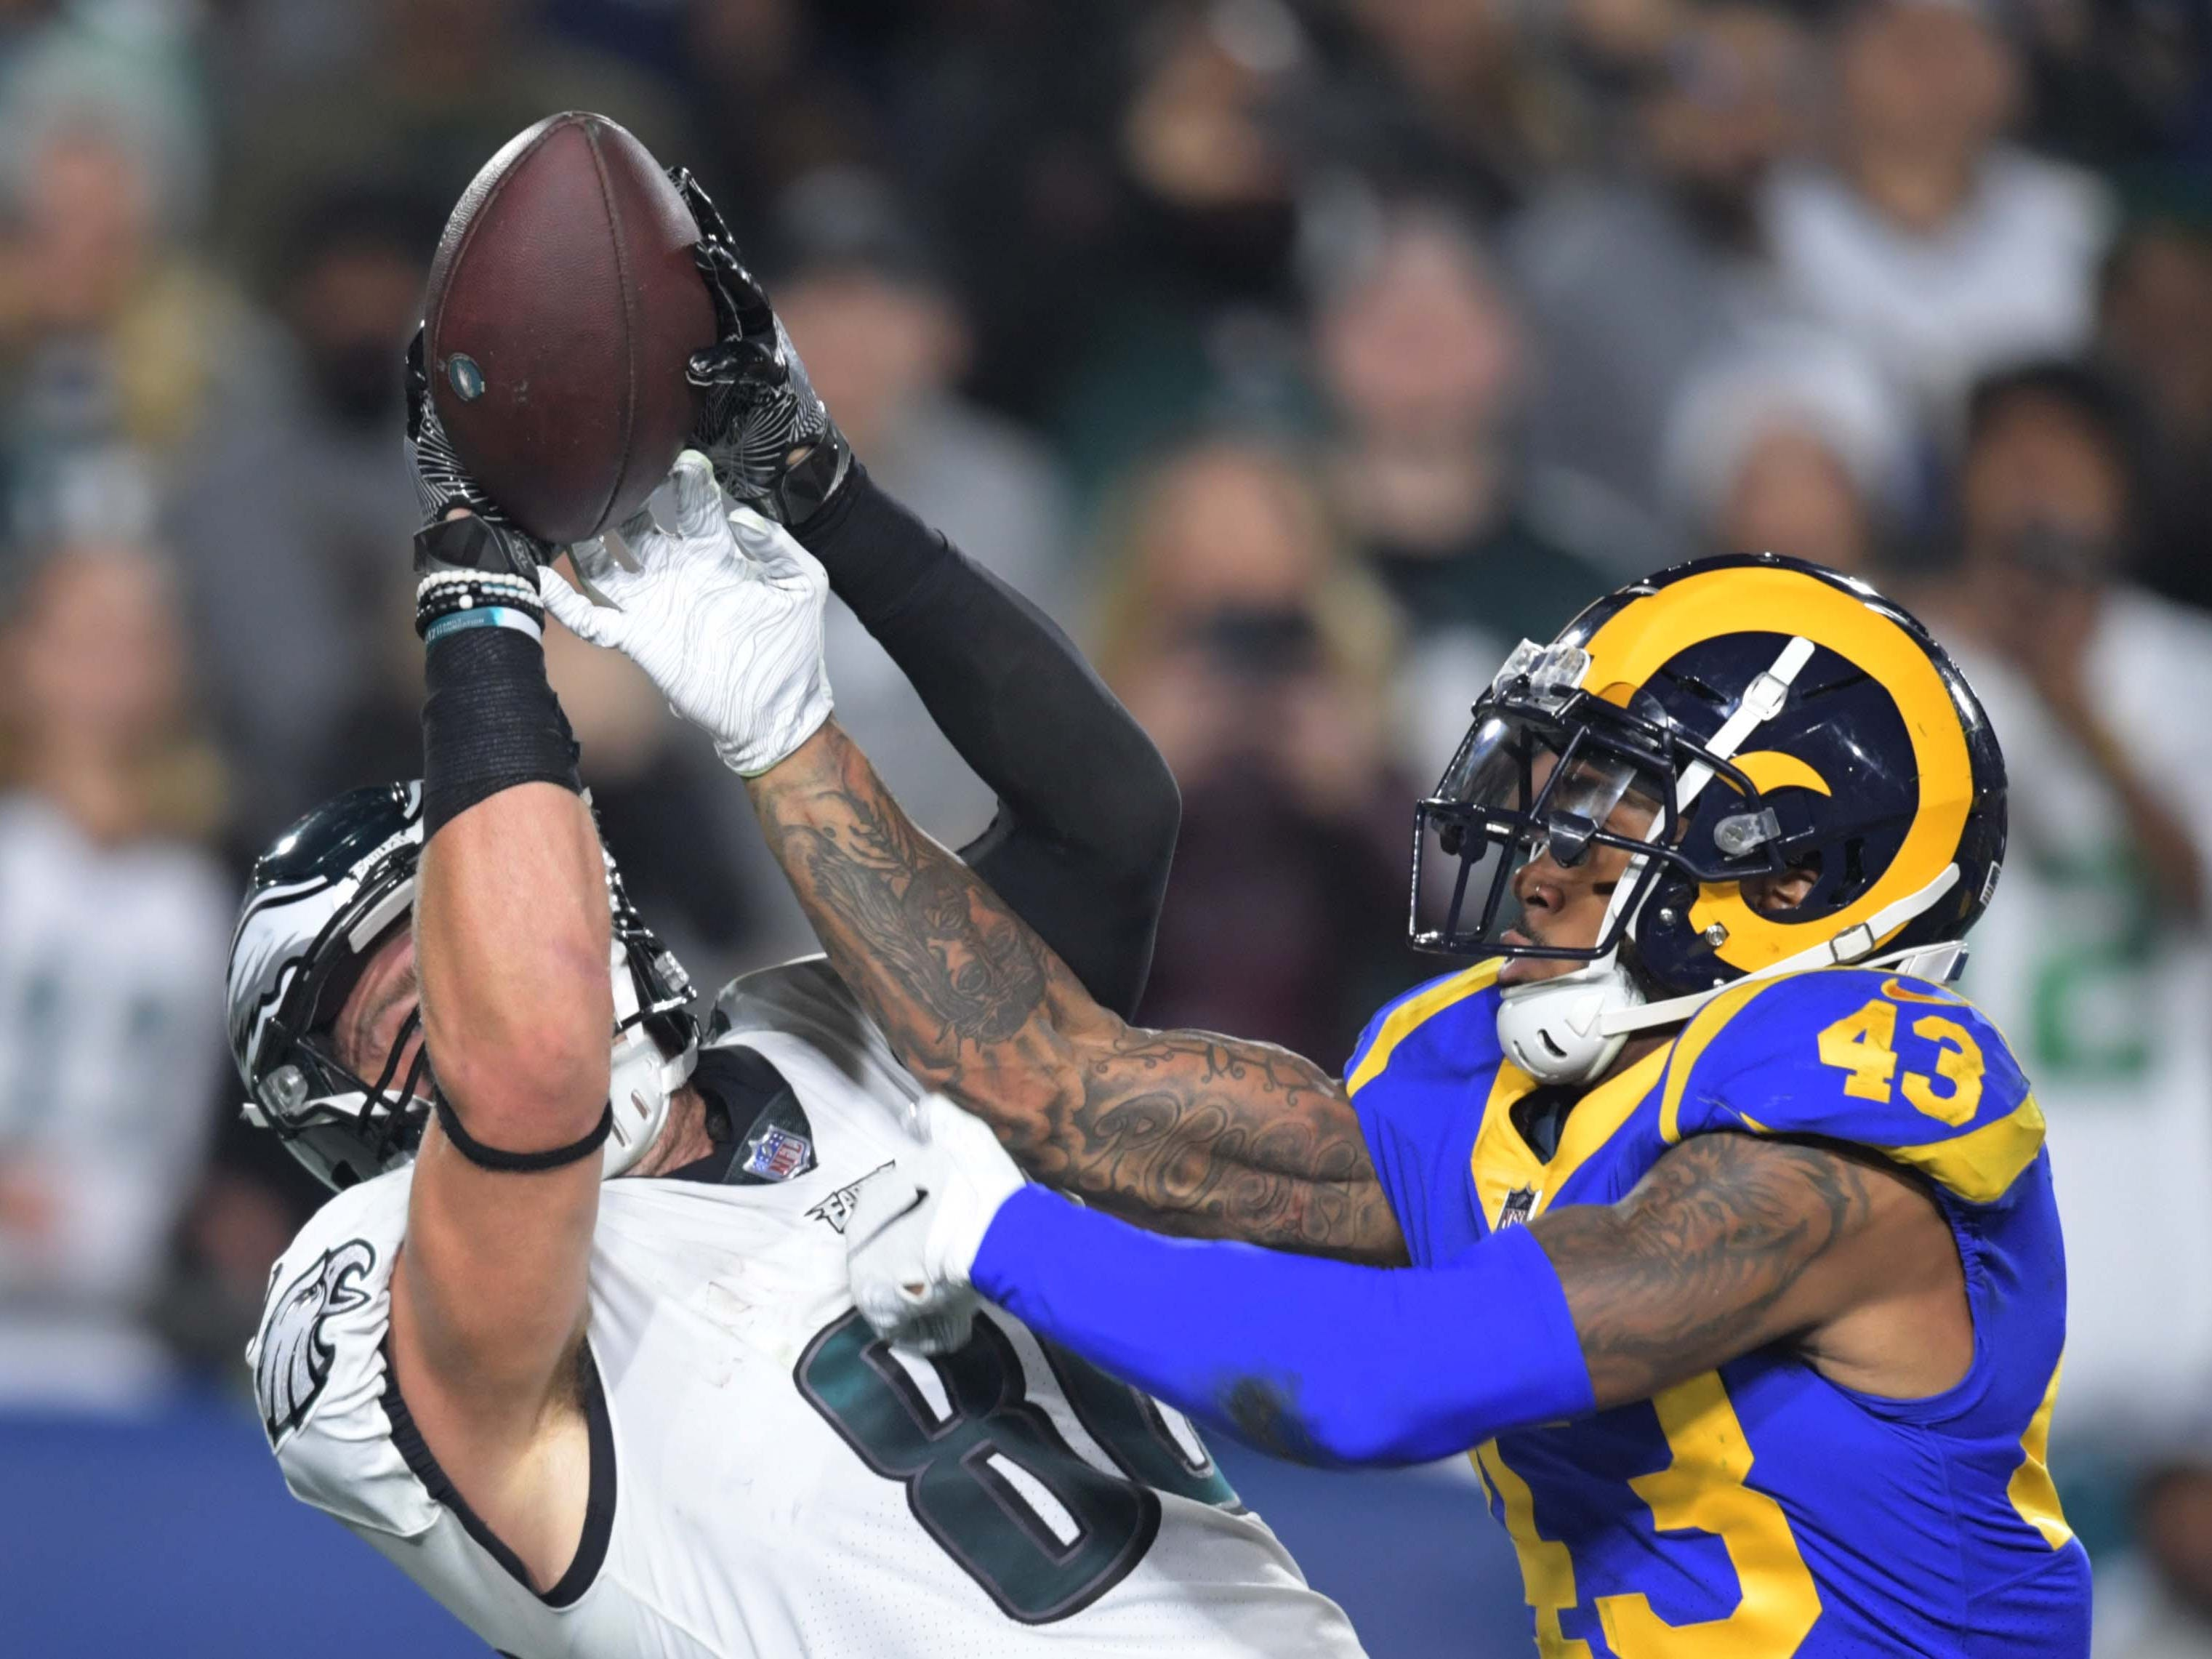 Los Angeles Rams strong safety John Johnson (43) defends as Philadelphia Eagles tight end Zach Ertz (86) attempt to make a catch during the first half at Los Angeles Memorial Coliseum.